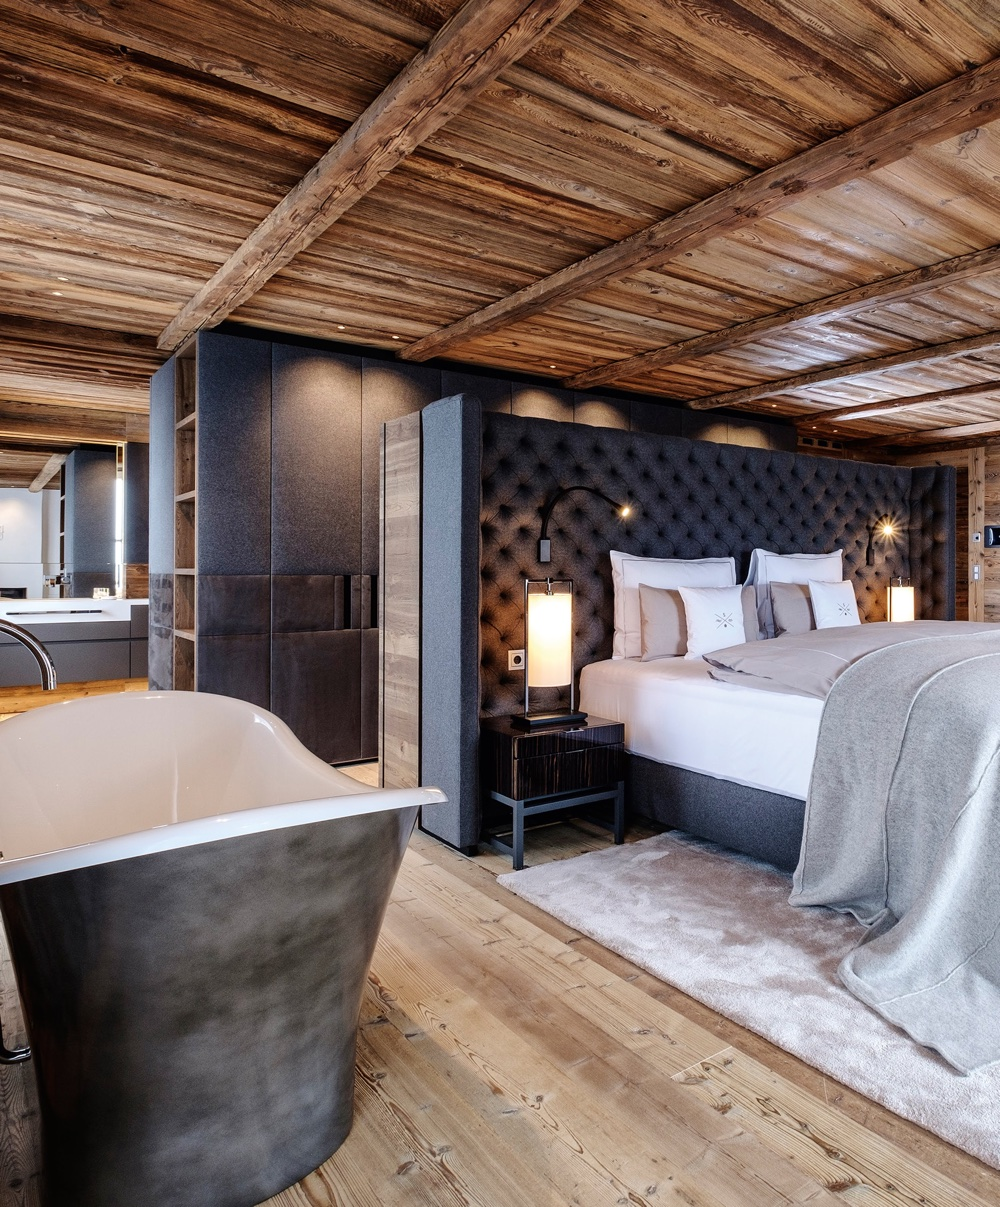 Tom Aikens at Severins: Top chef to host fine dining experience at luxury ski chalet in Austria